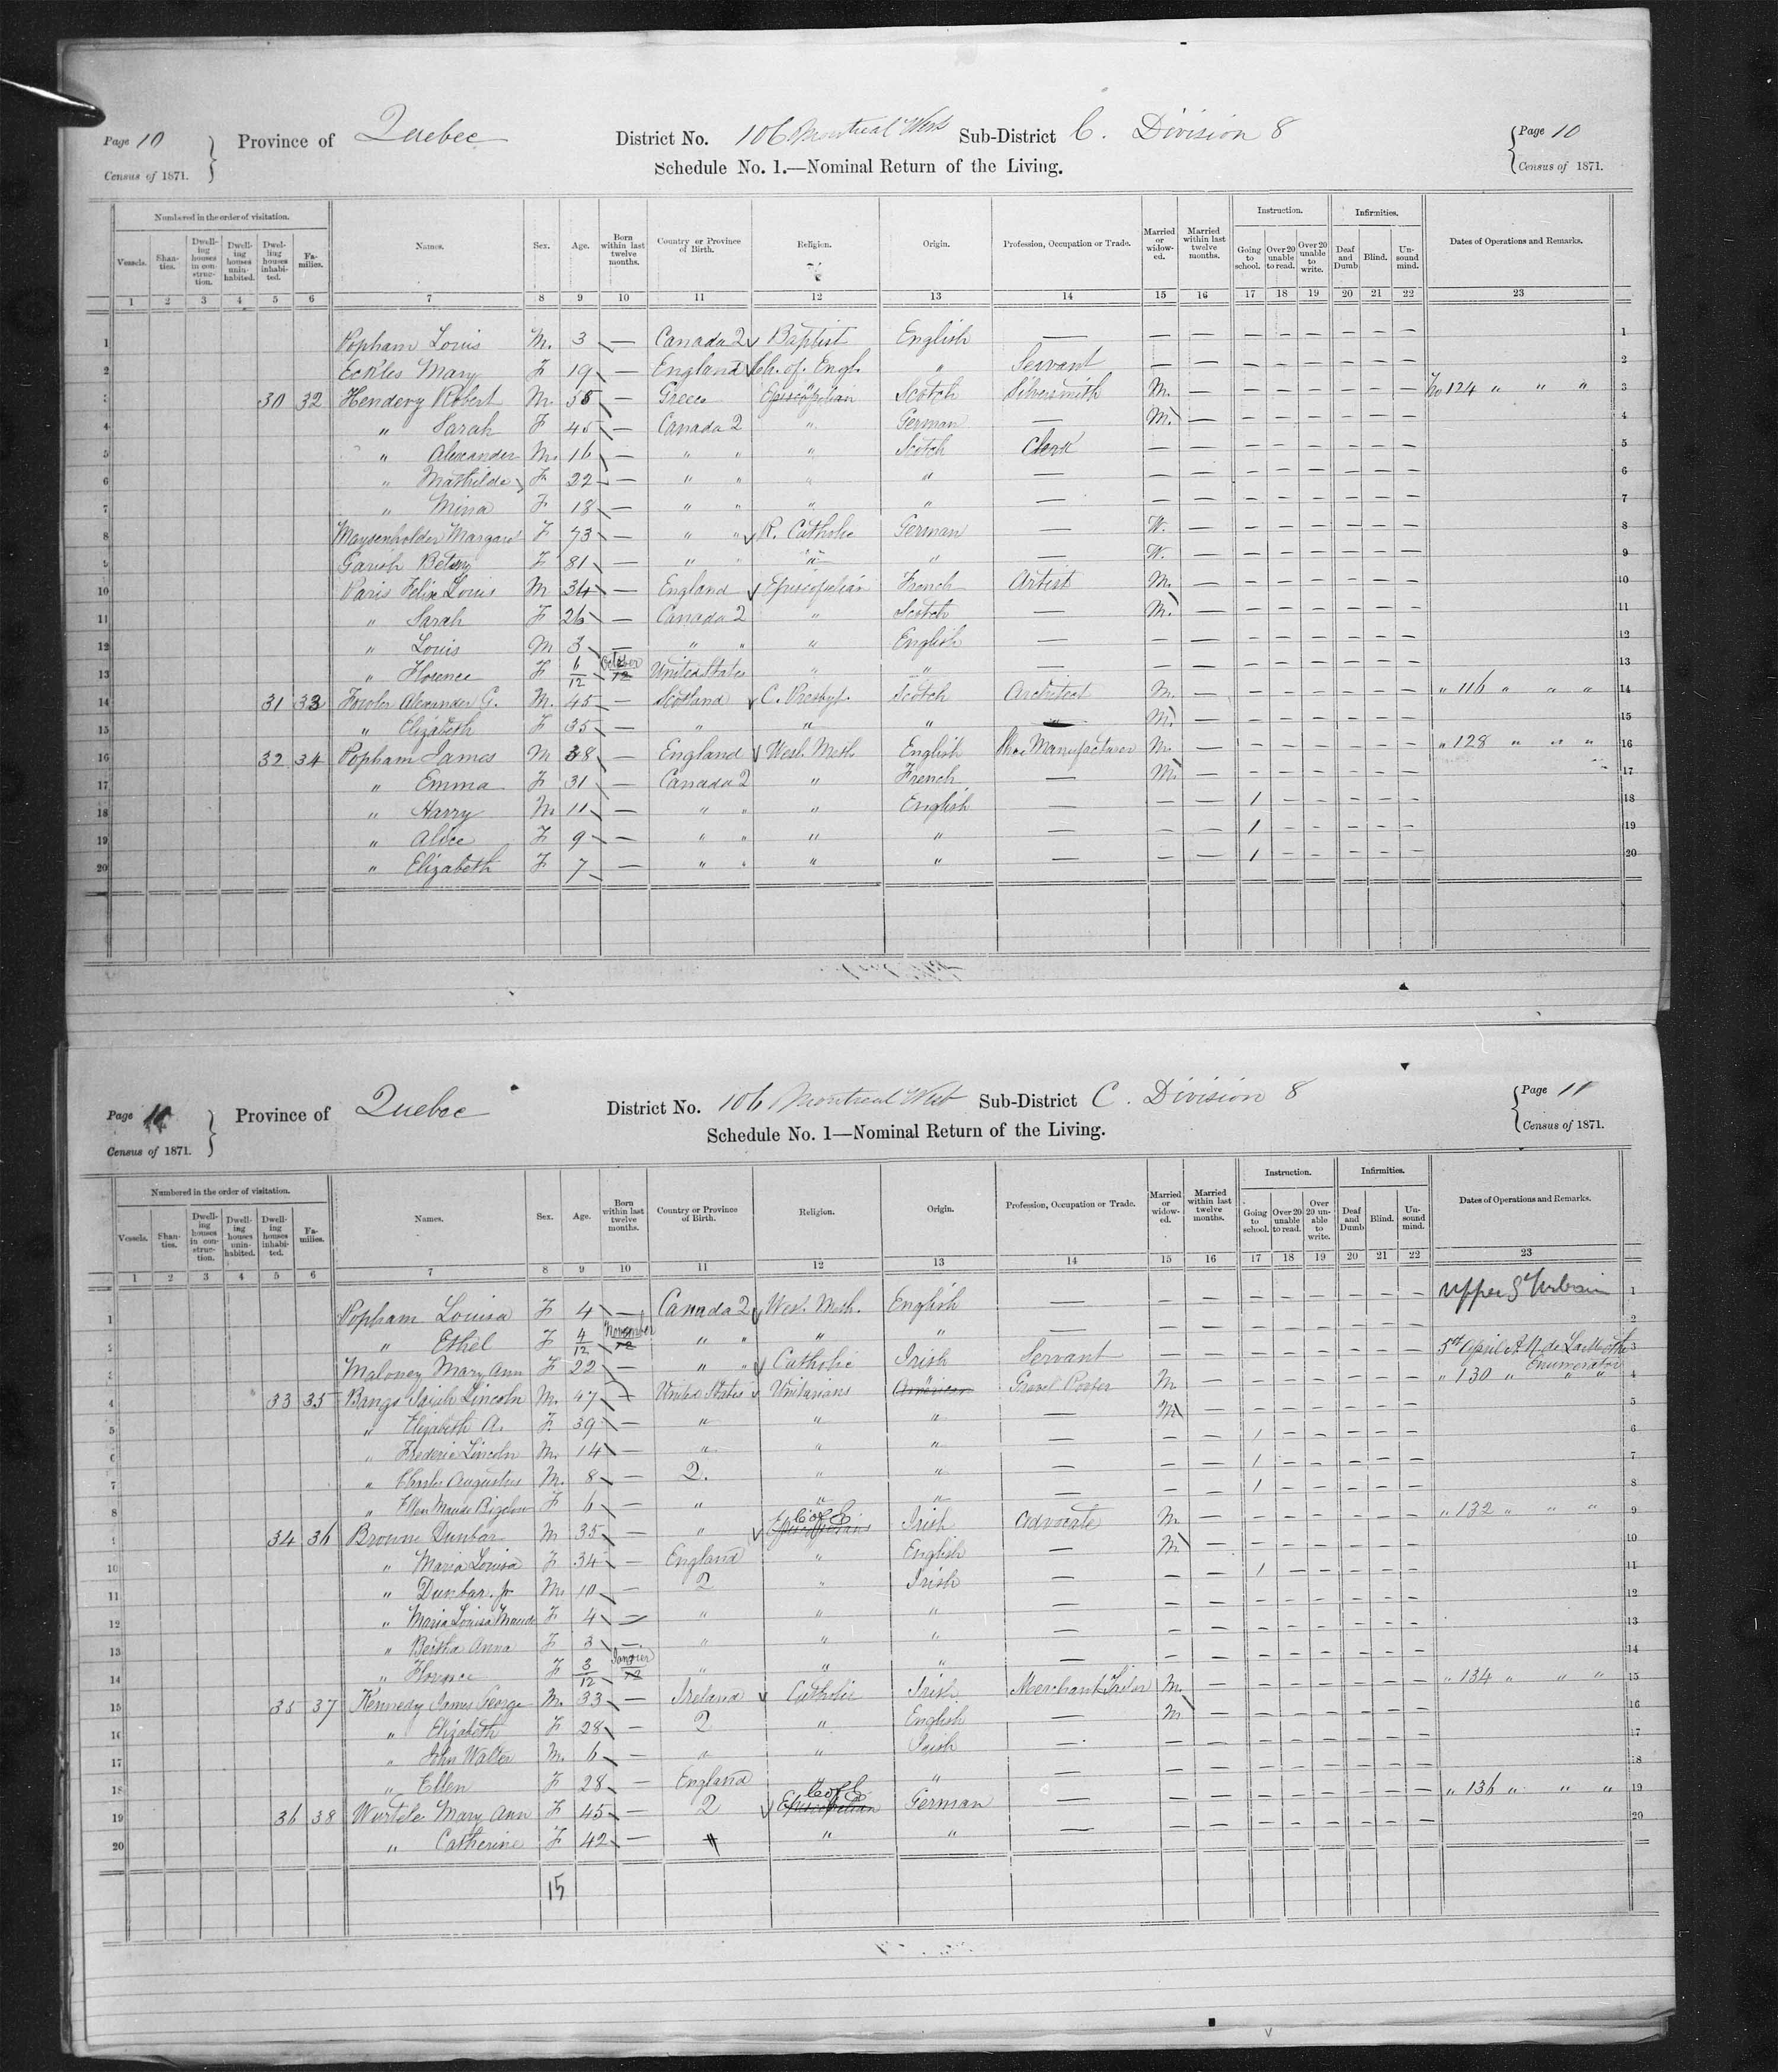 Digitized page of Census of Canada, 1871, Page number 11, for Dunbar Brown